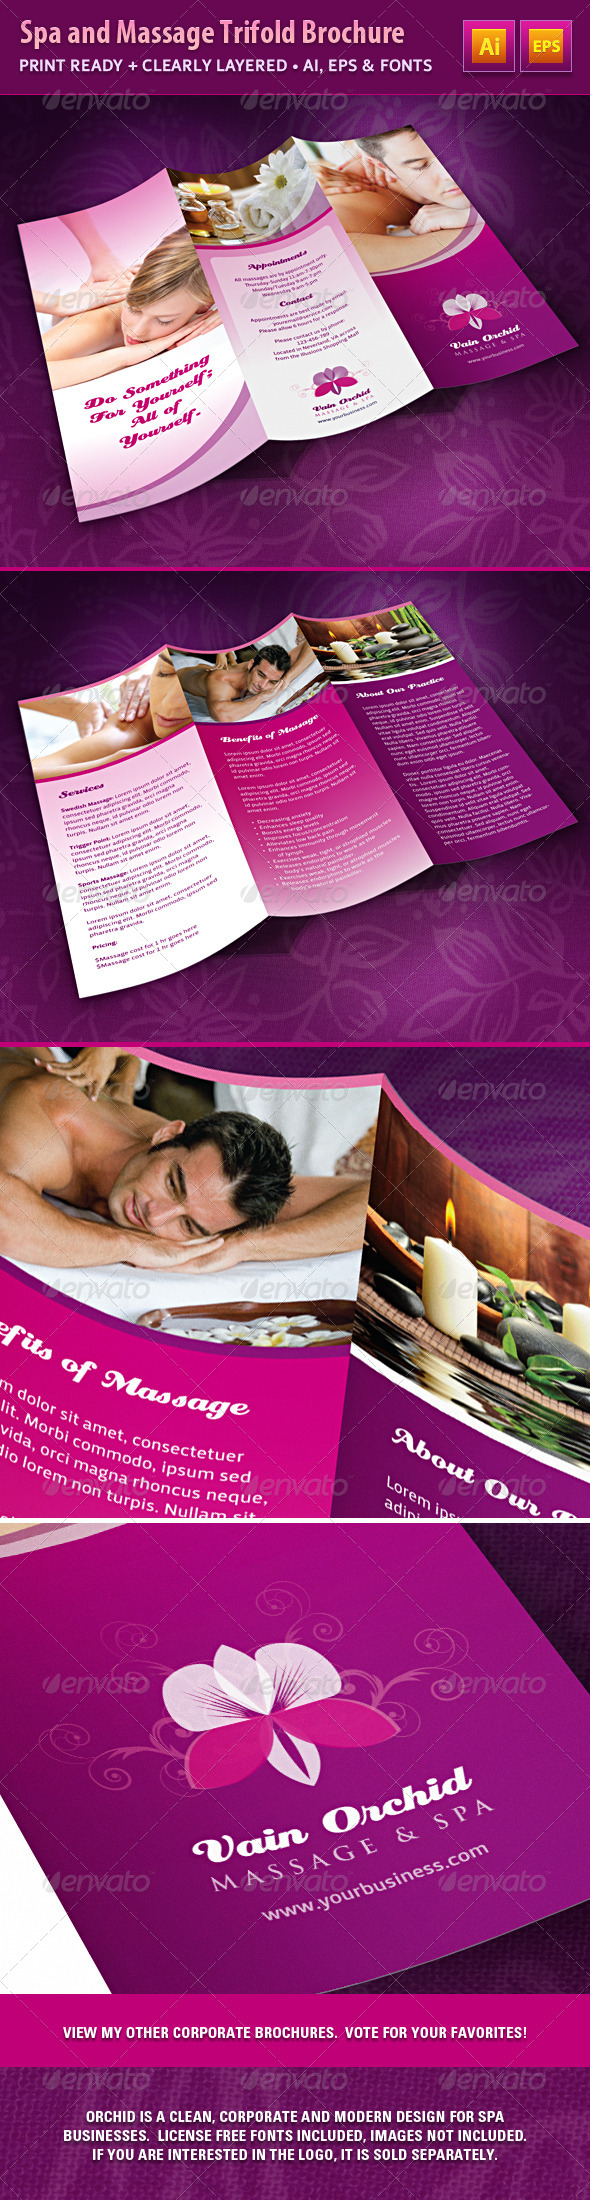 Spa and Massage Business Trifold Brochure - Corporate Brochures